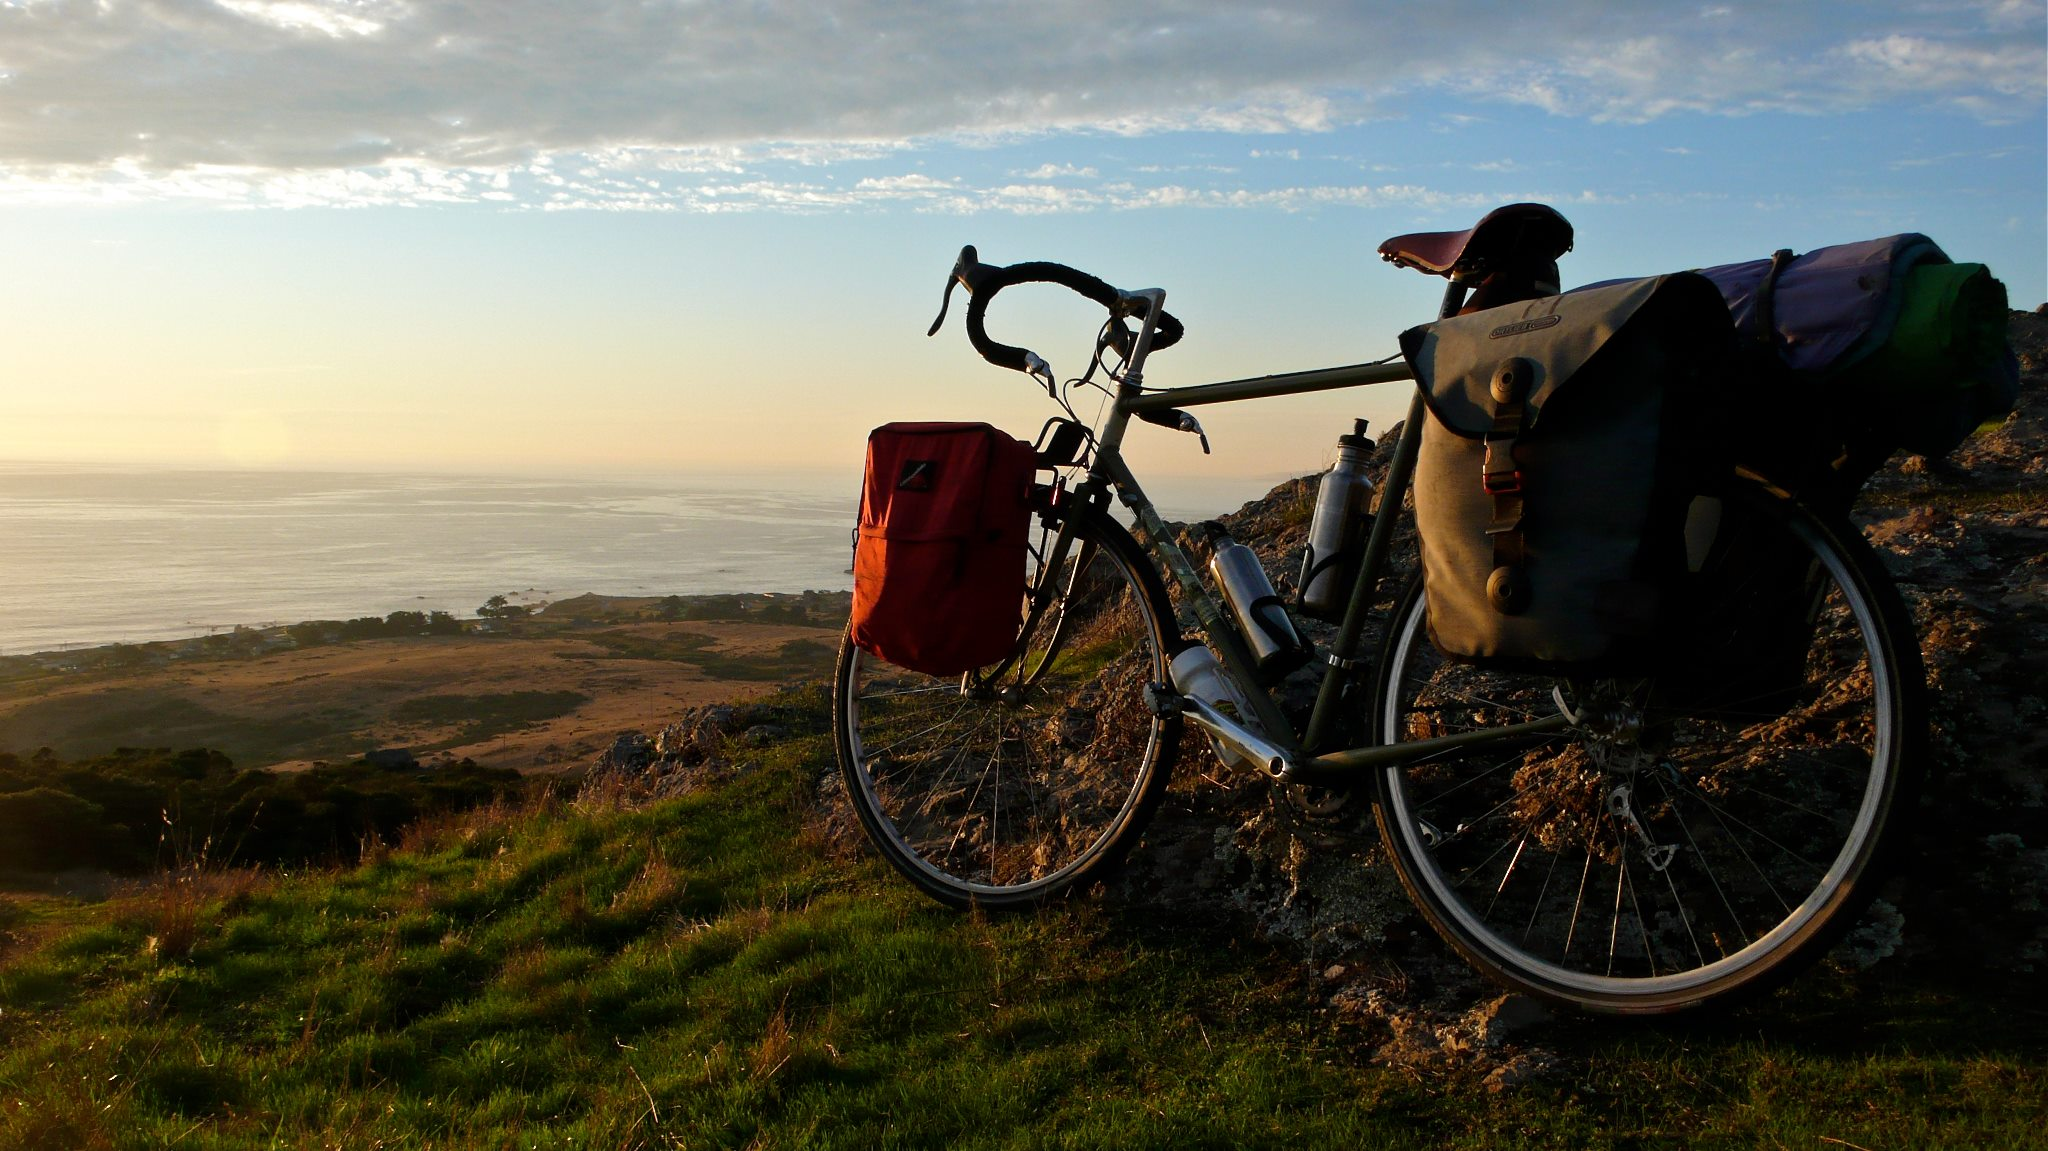 It's been a long time since THIS happened, but... This is why I love bike touring always and forever. -- Anthony Musick